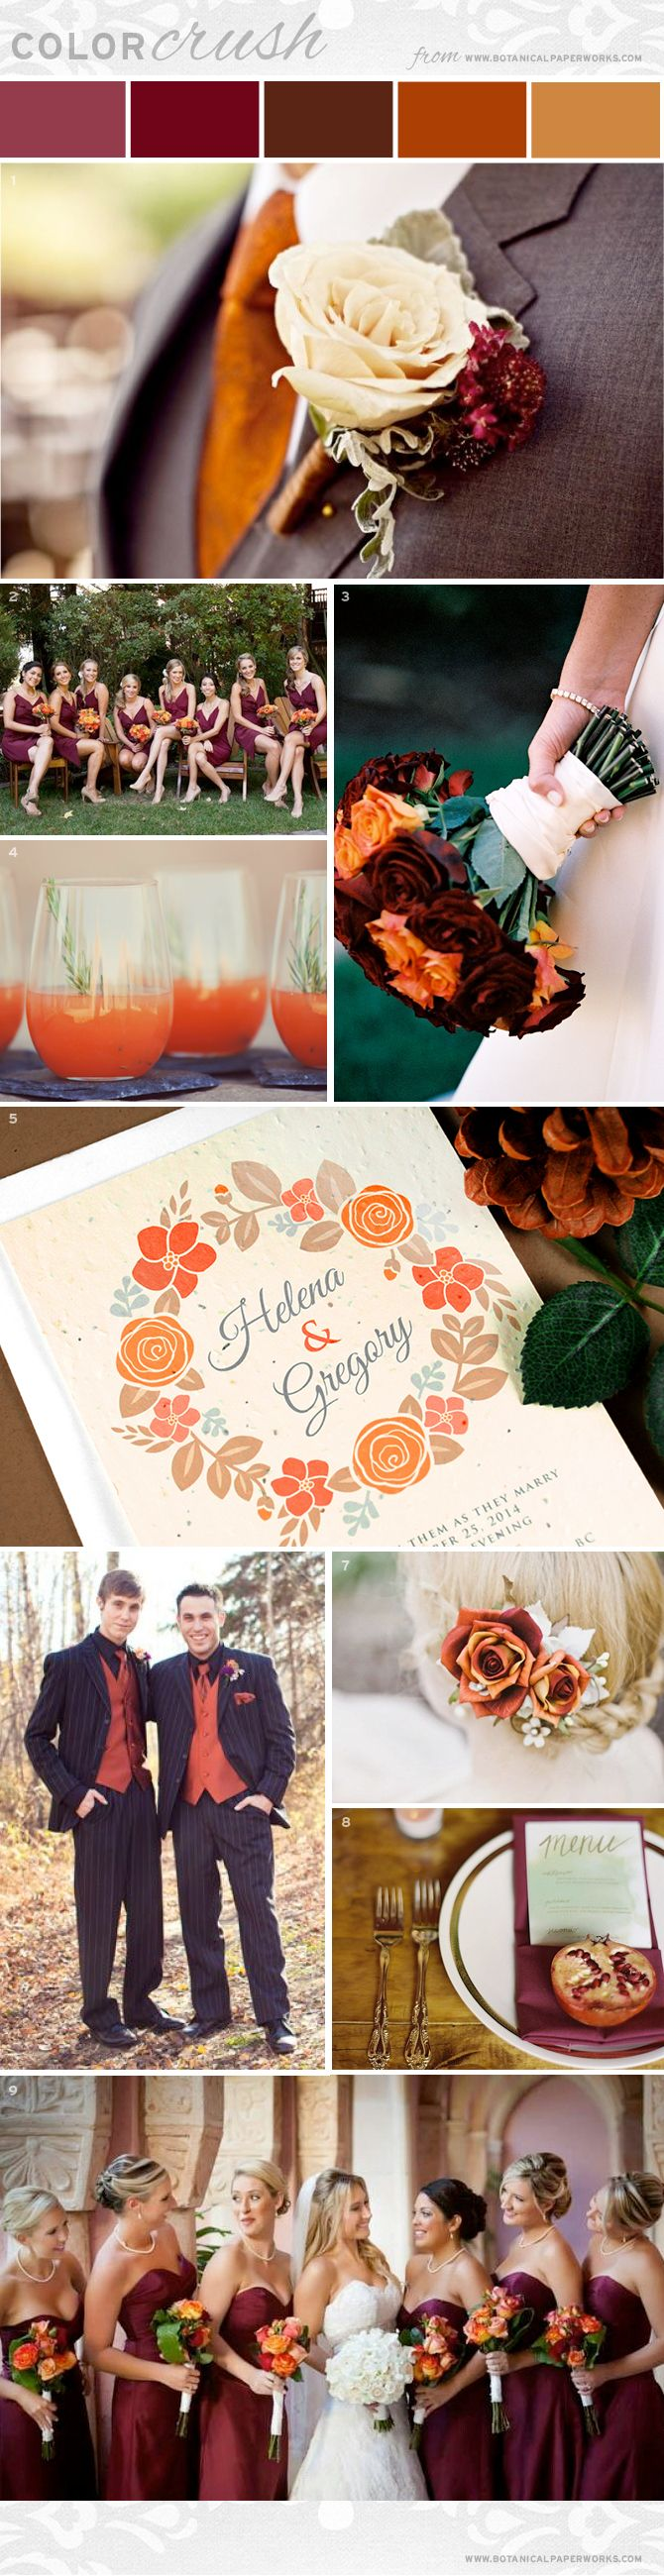 Check out this stunning wedding palette potential - Burnt Orange & Burgundy! The fall inspired hues are full of character and create a warm and inviting mood for guests.